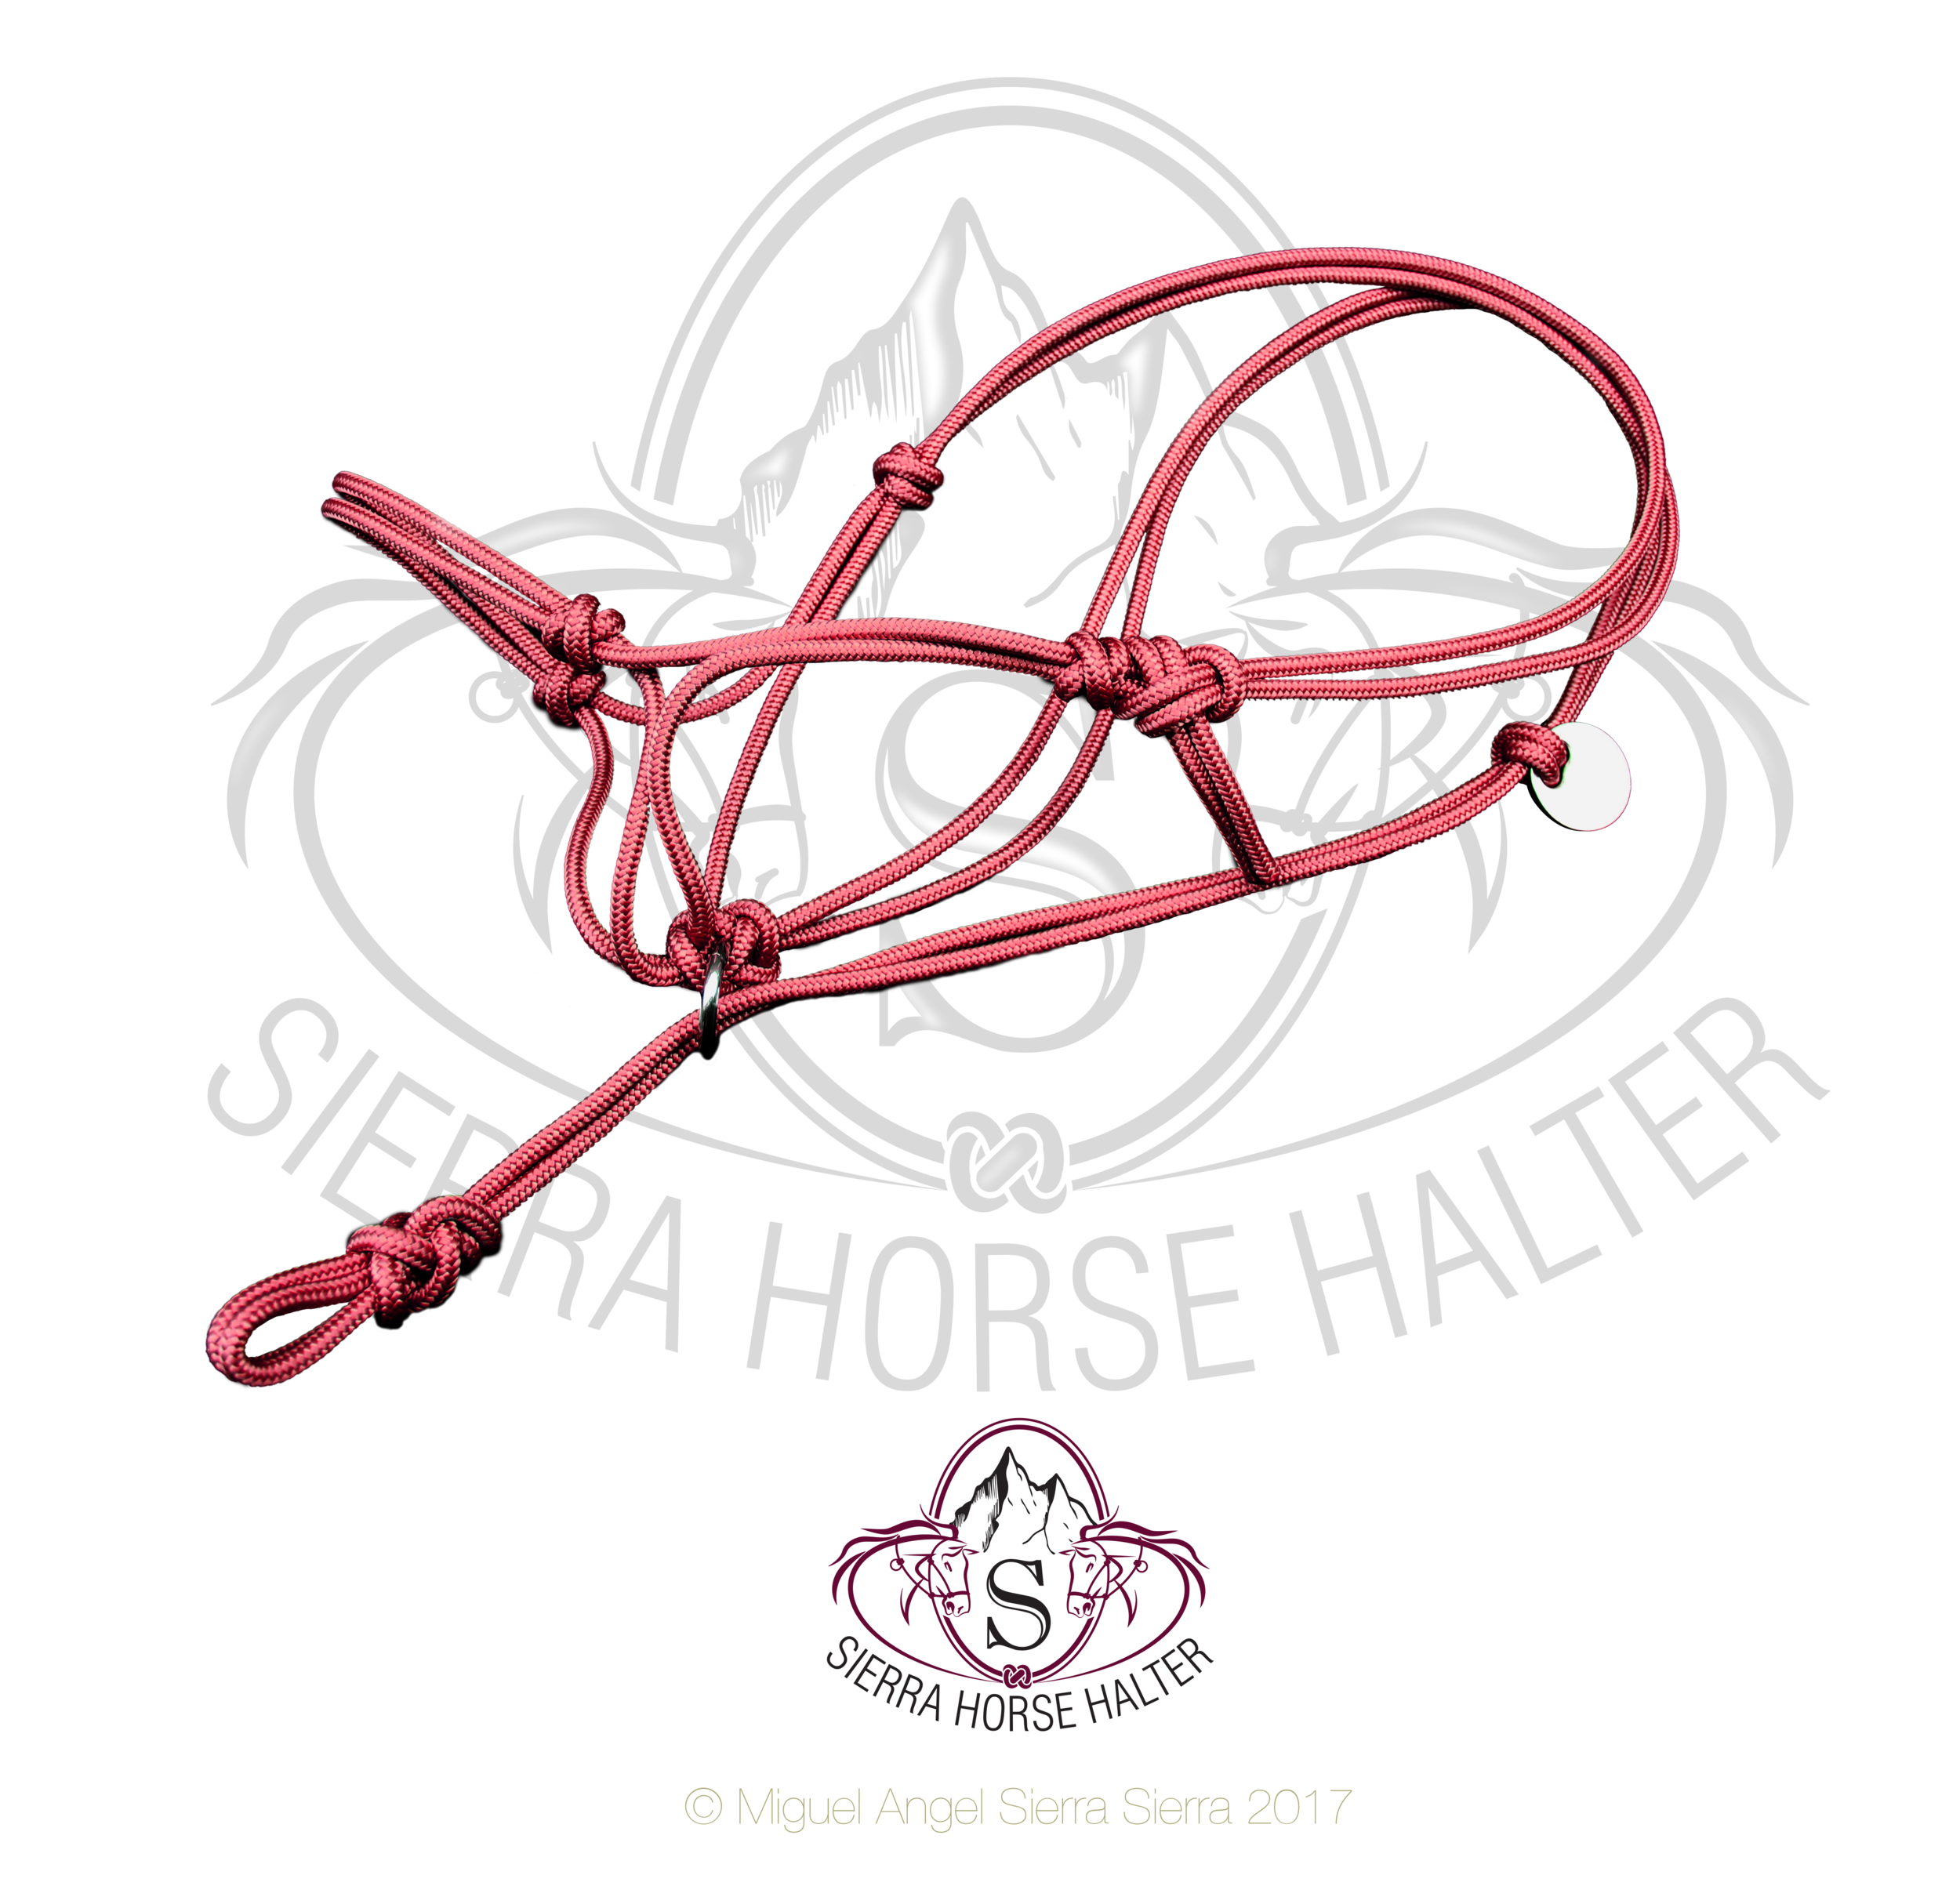 We are not just a product, We are a service - With the Sierra Horse Halter you have access to a vast pool of knowledge and expertise, including Alberto Sierra himself. Contact us with any questions or comments and we will be back to you promptly!